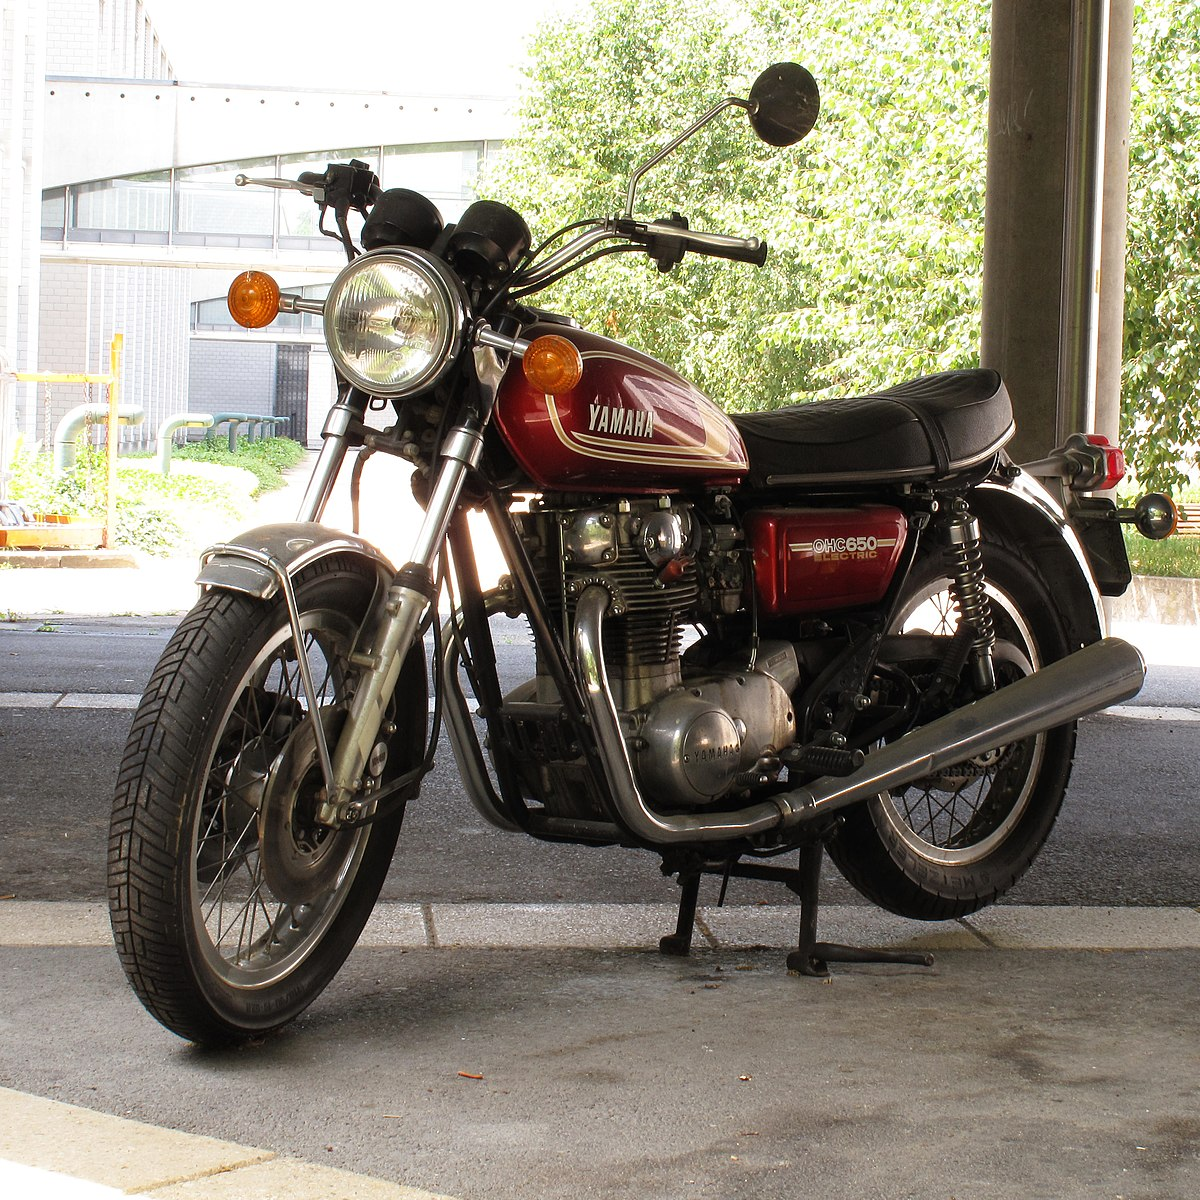 hight resolution of yamaha xs 650 wikipedia 83 yamaha 400 xs wiring diagram